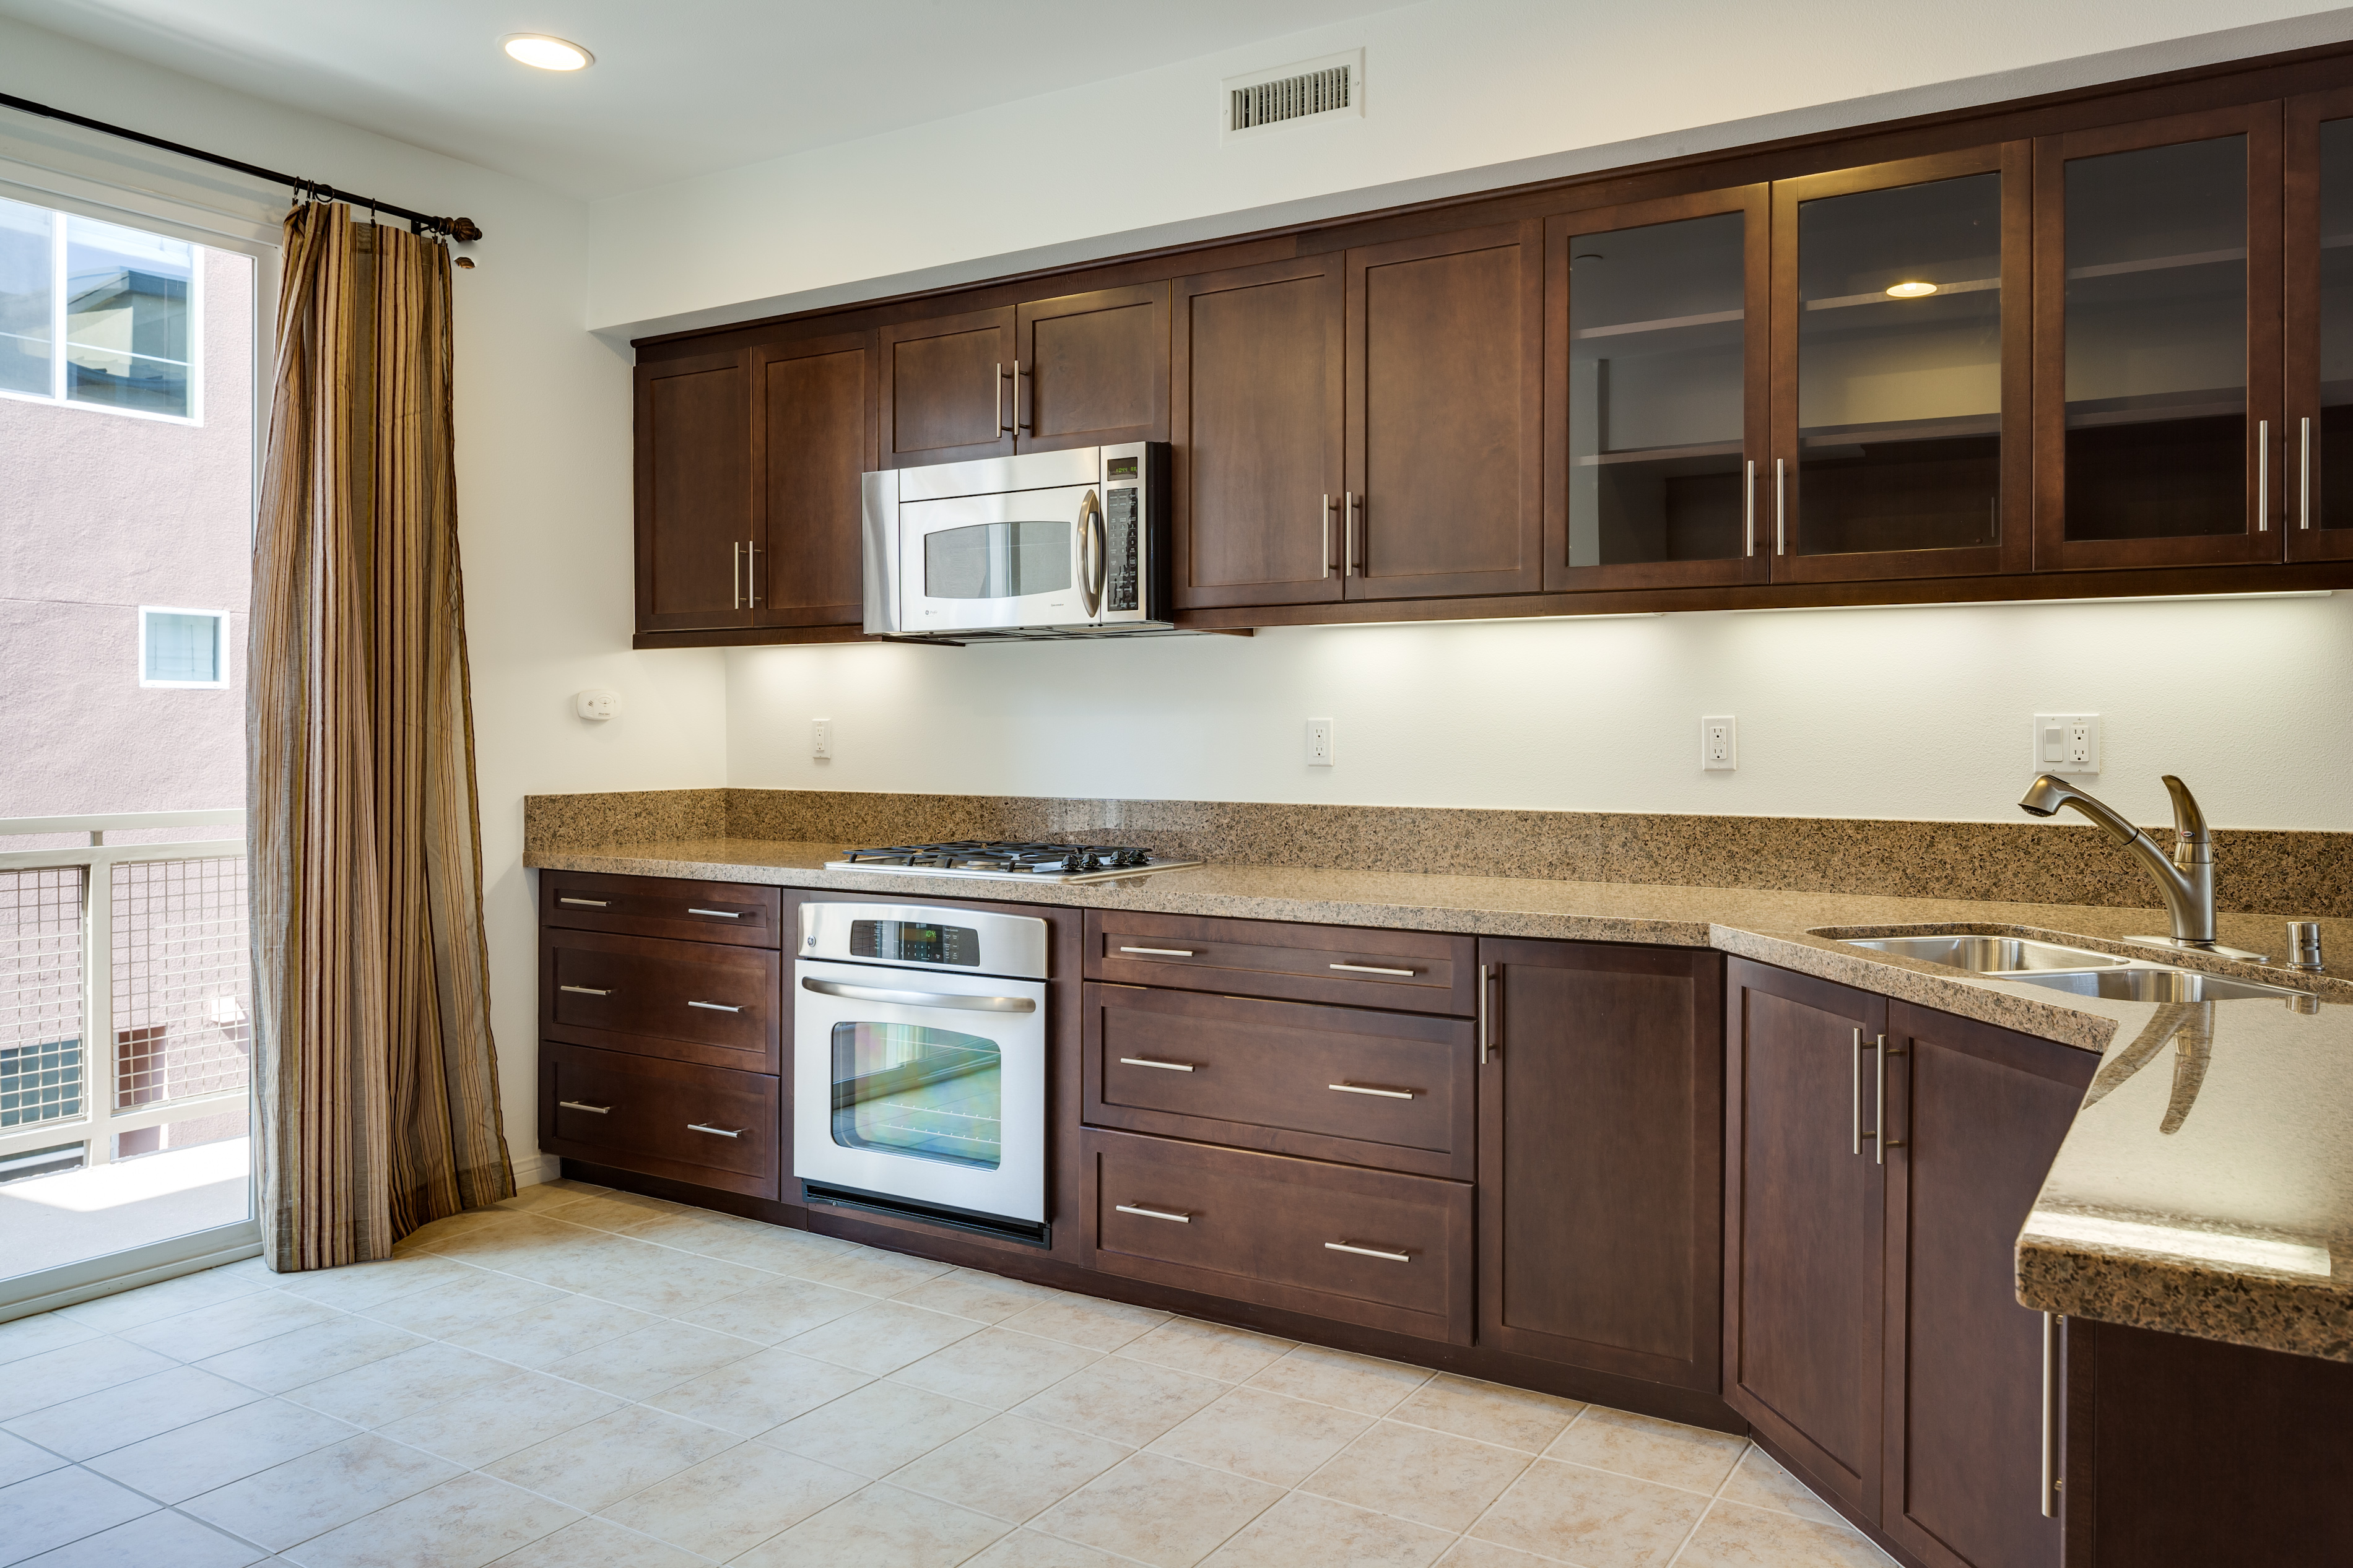 583 Rockefeller, The Sousse Group, Luxury Irvine Condos for Sale